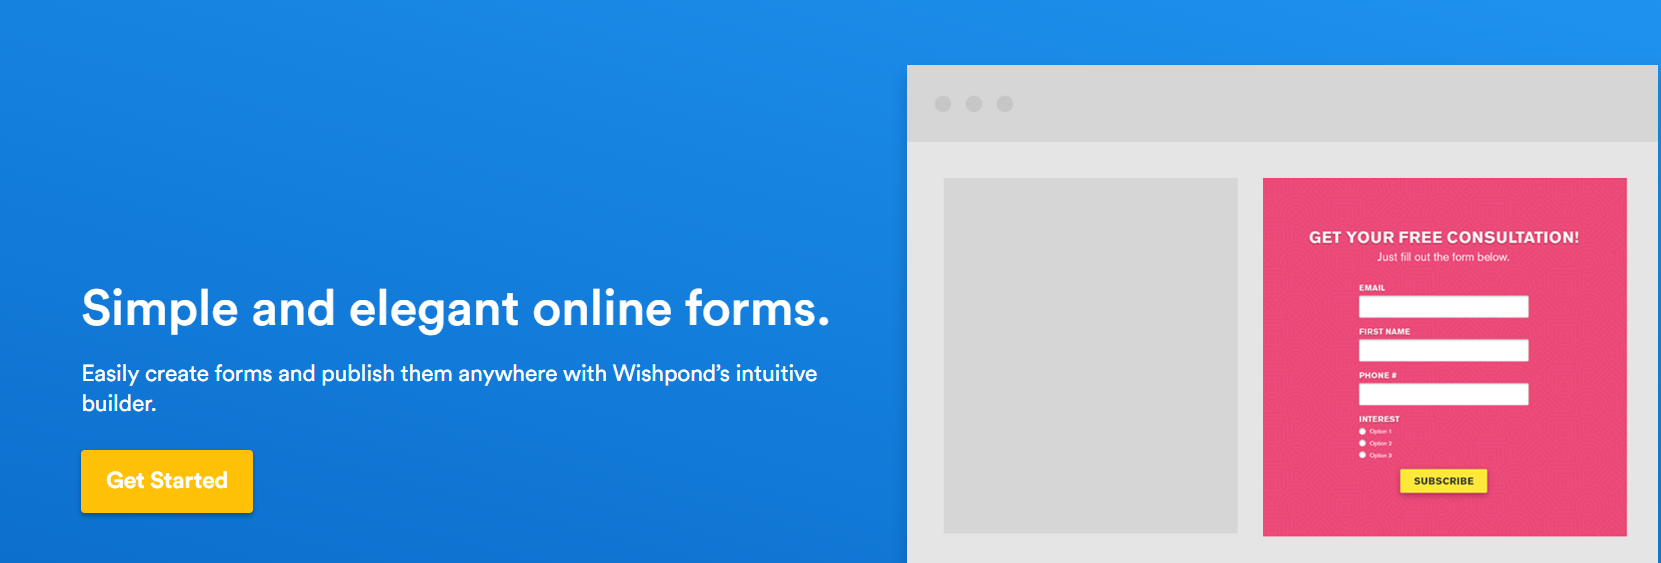 Wishpond - Easy Online Form Builder